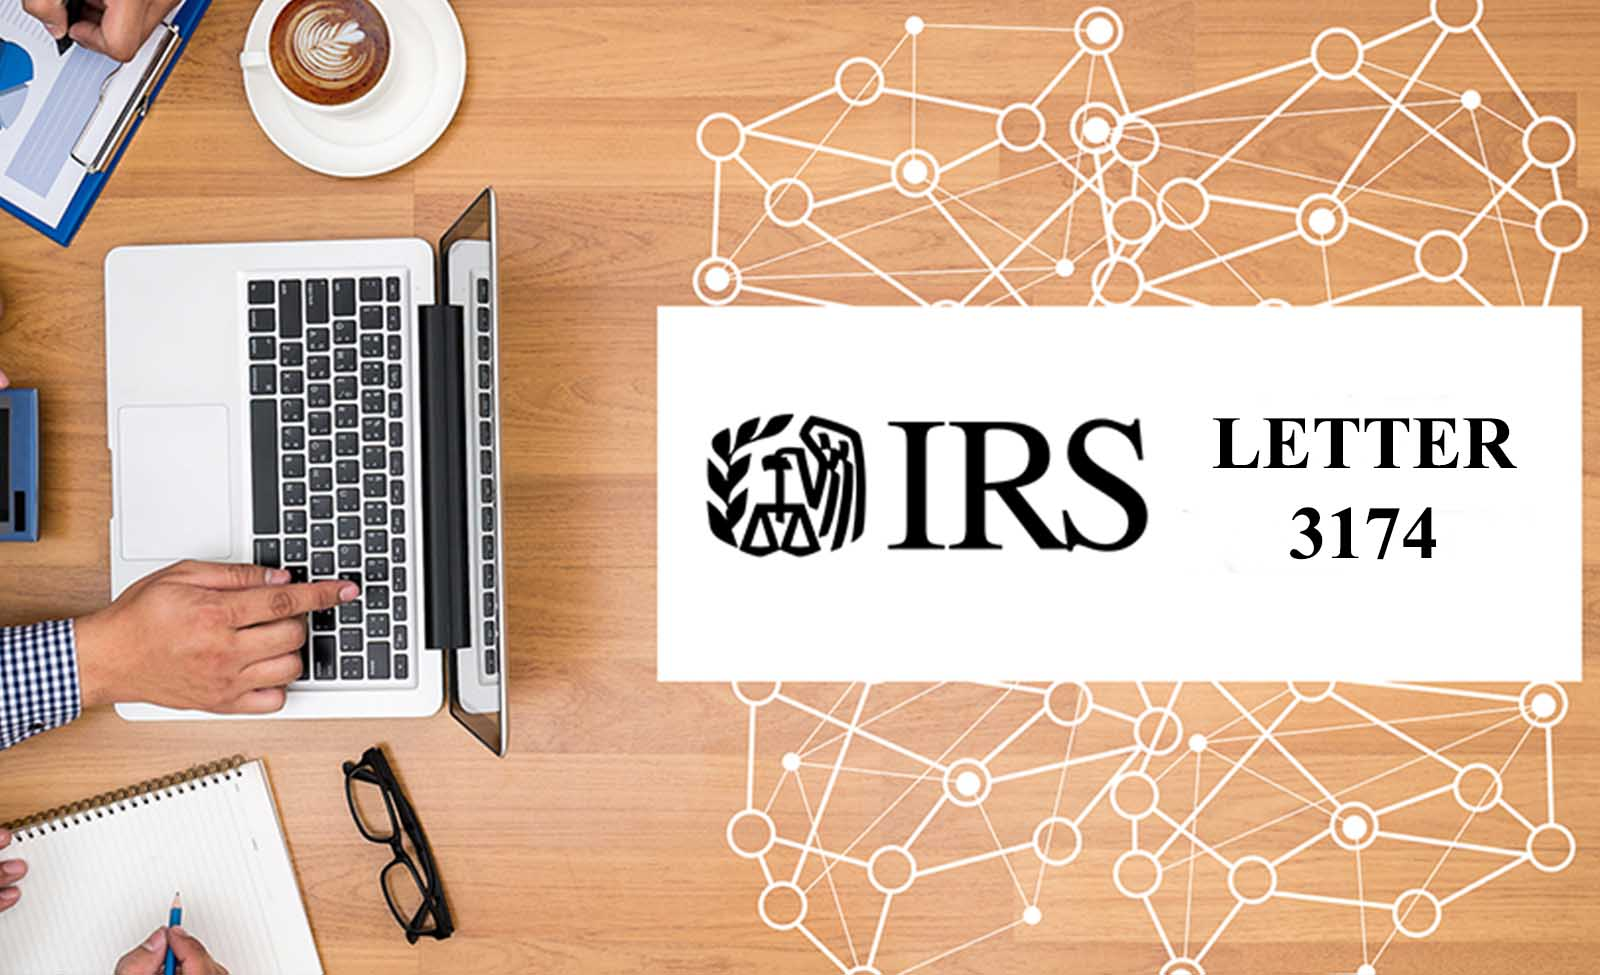 How to Respond to IRS Letter 3174